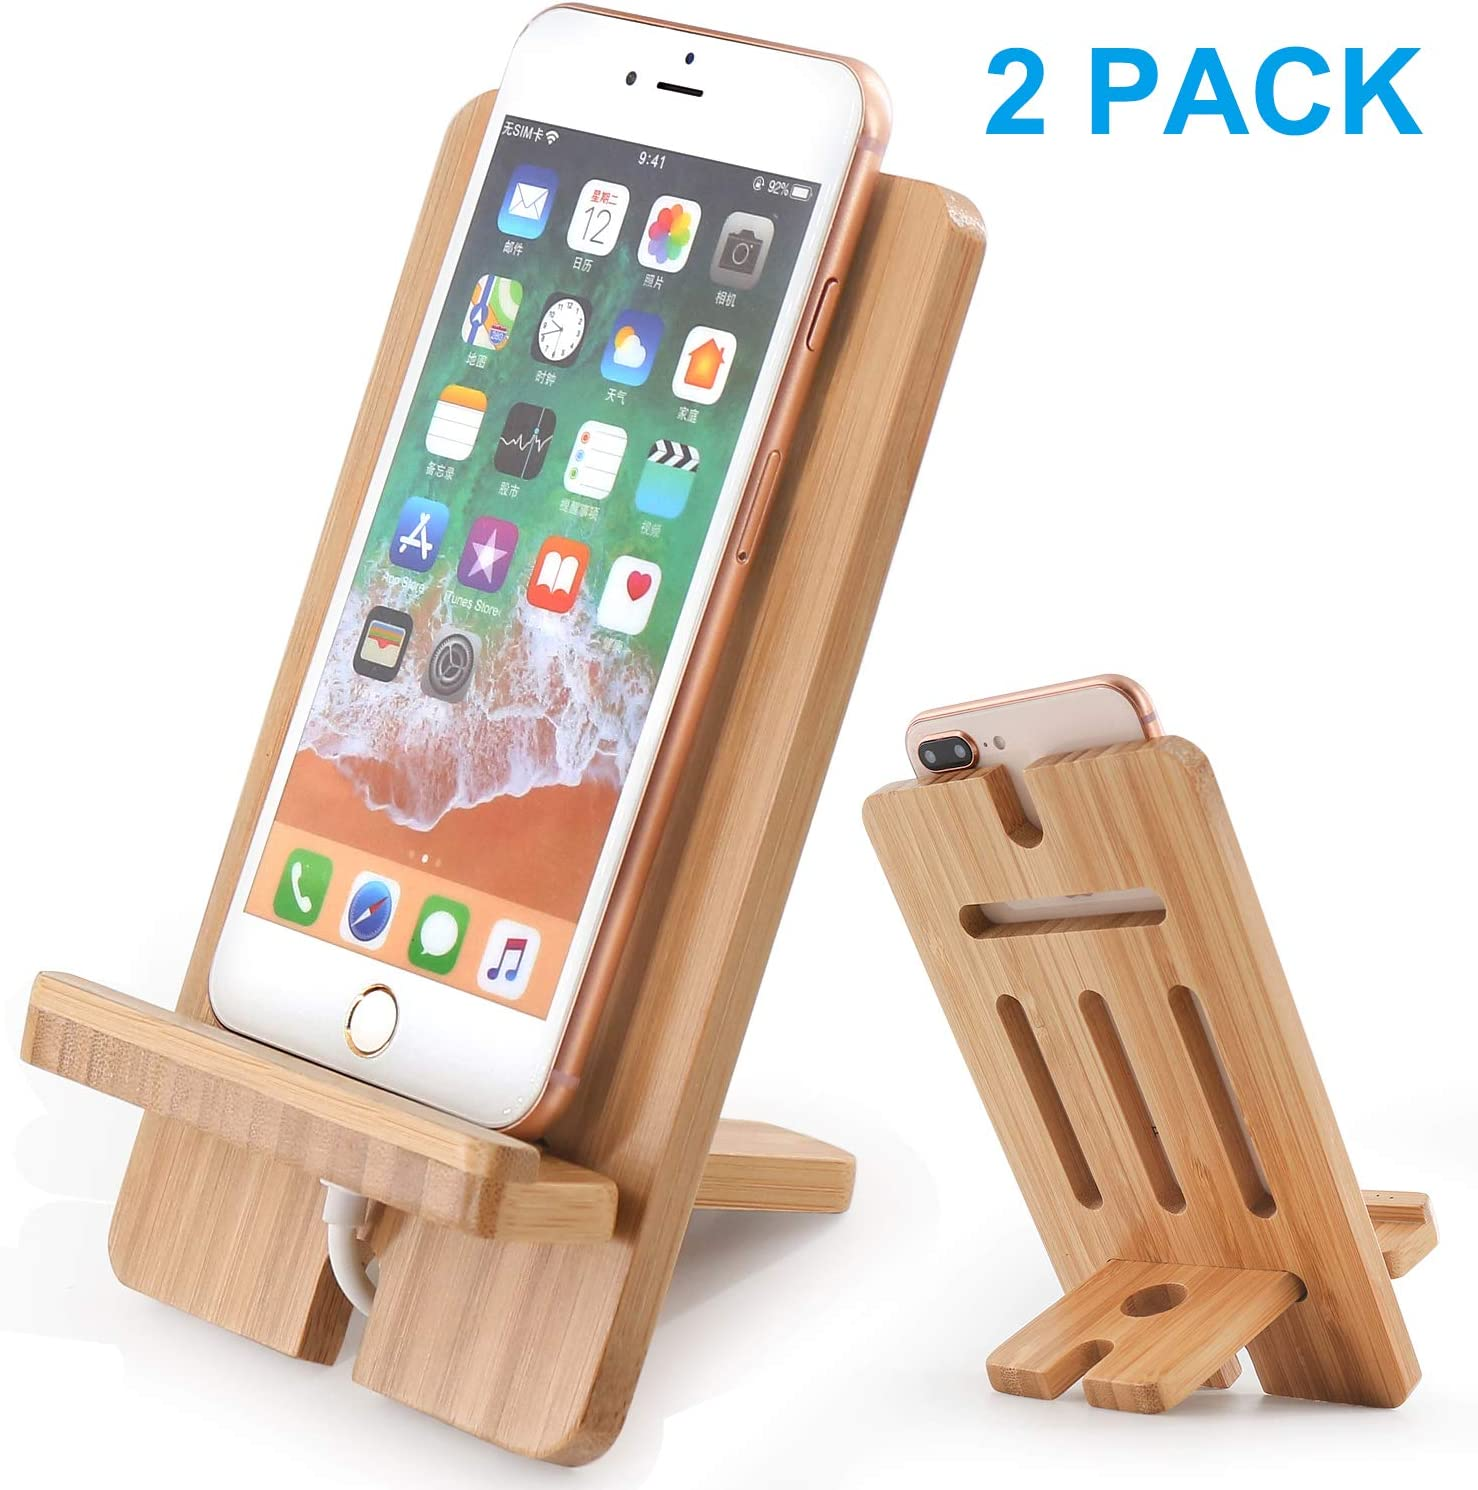 Cell Phone Tablet Stand 2 Pack, Bamboo Wooden Smart Phone Desktop Charging Dock Holder Compatible with Pad, Tablet, Phone 8 Plus X XS Max XR 7 7Plus, All iOS & Android Devices,